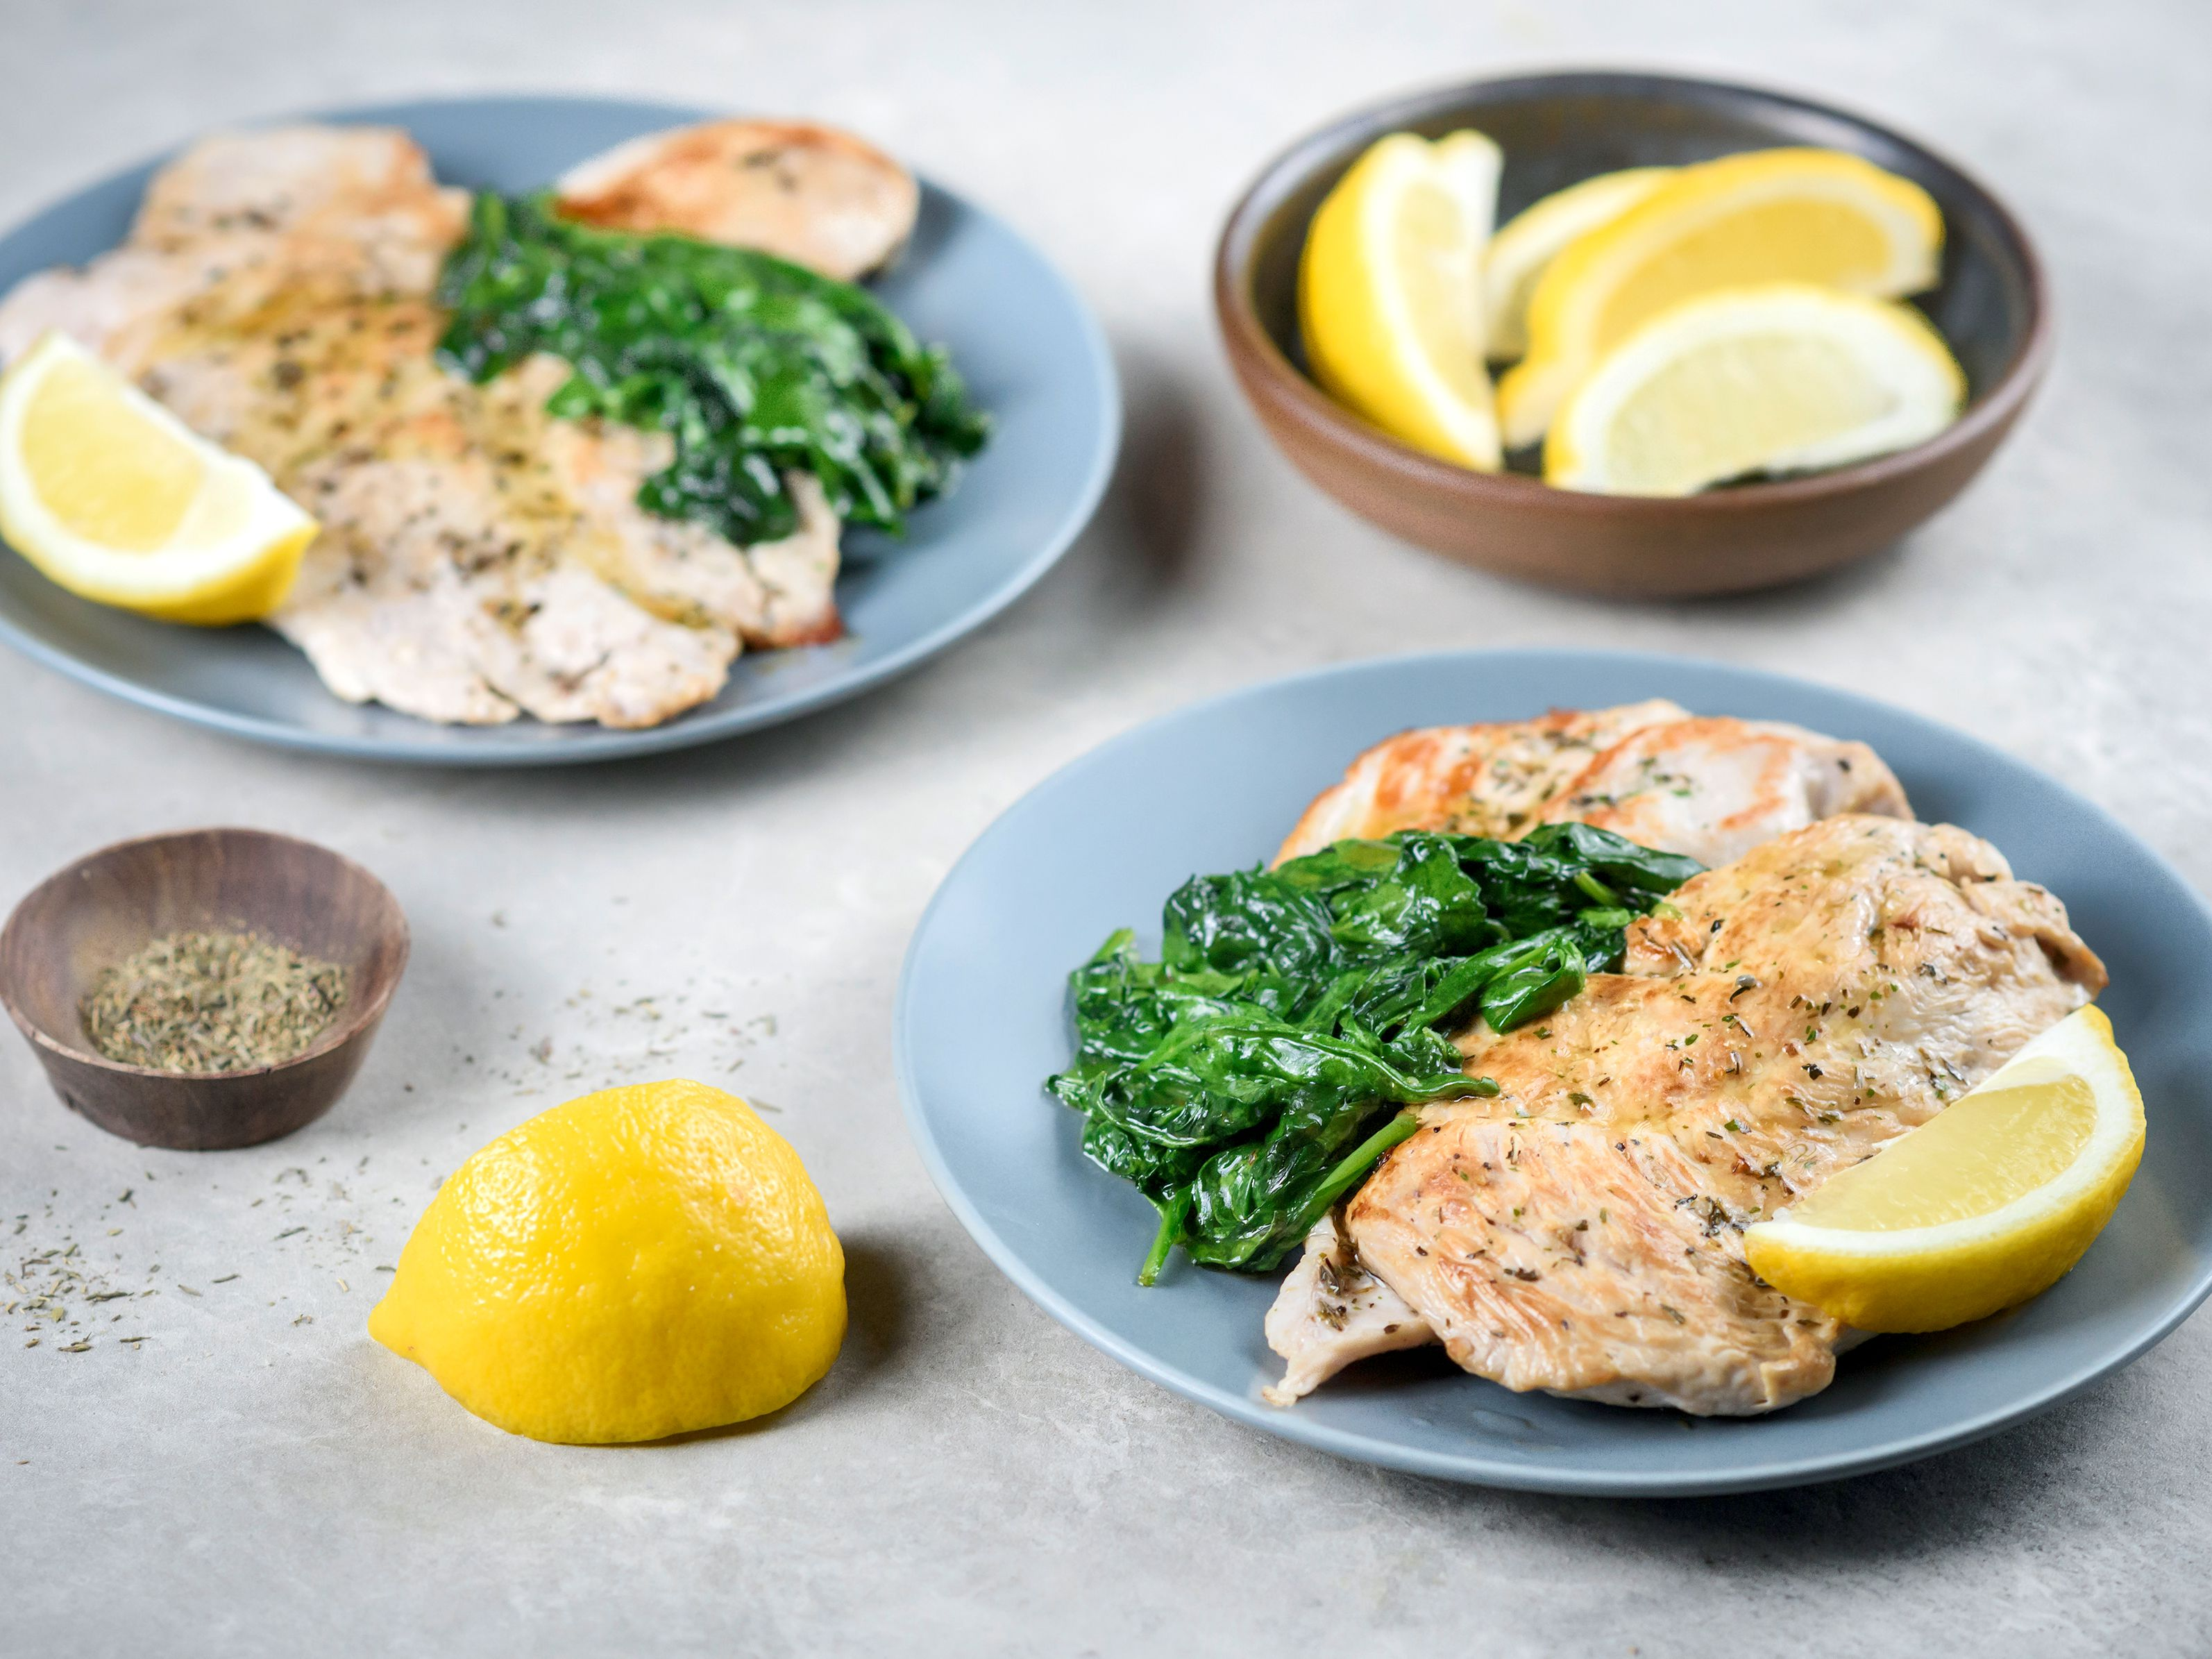 Pan-Seared Turkey Breast With Lemon and Herbs